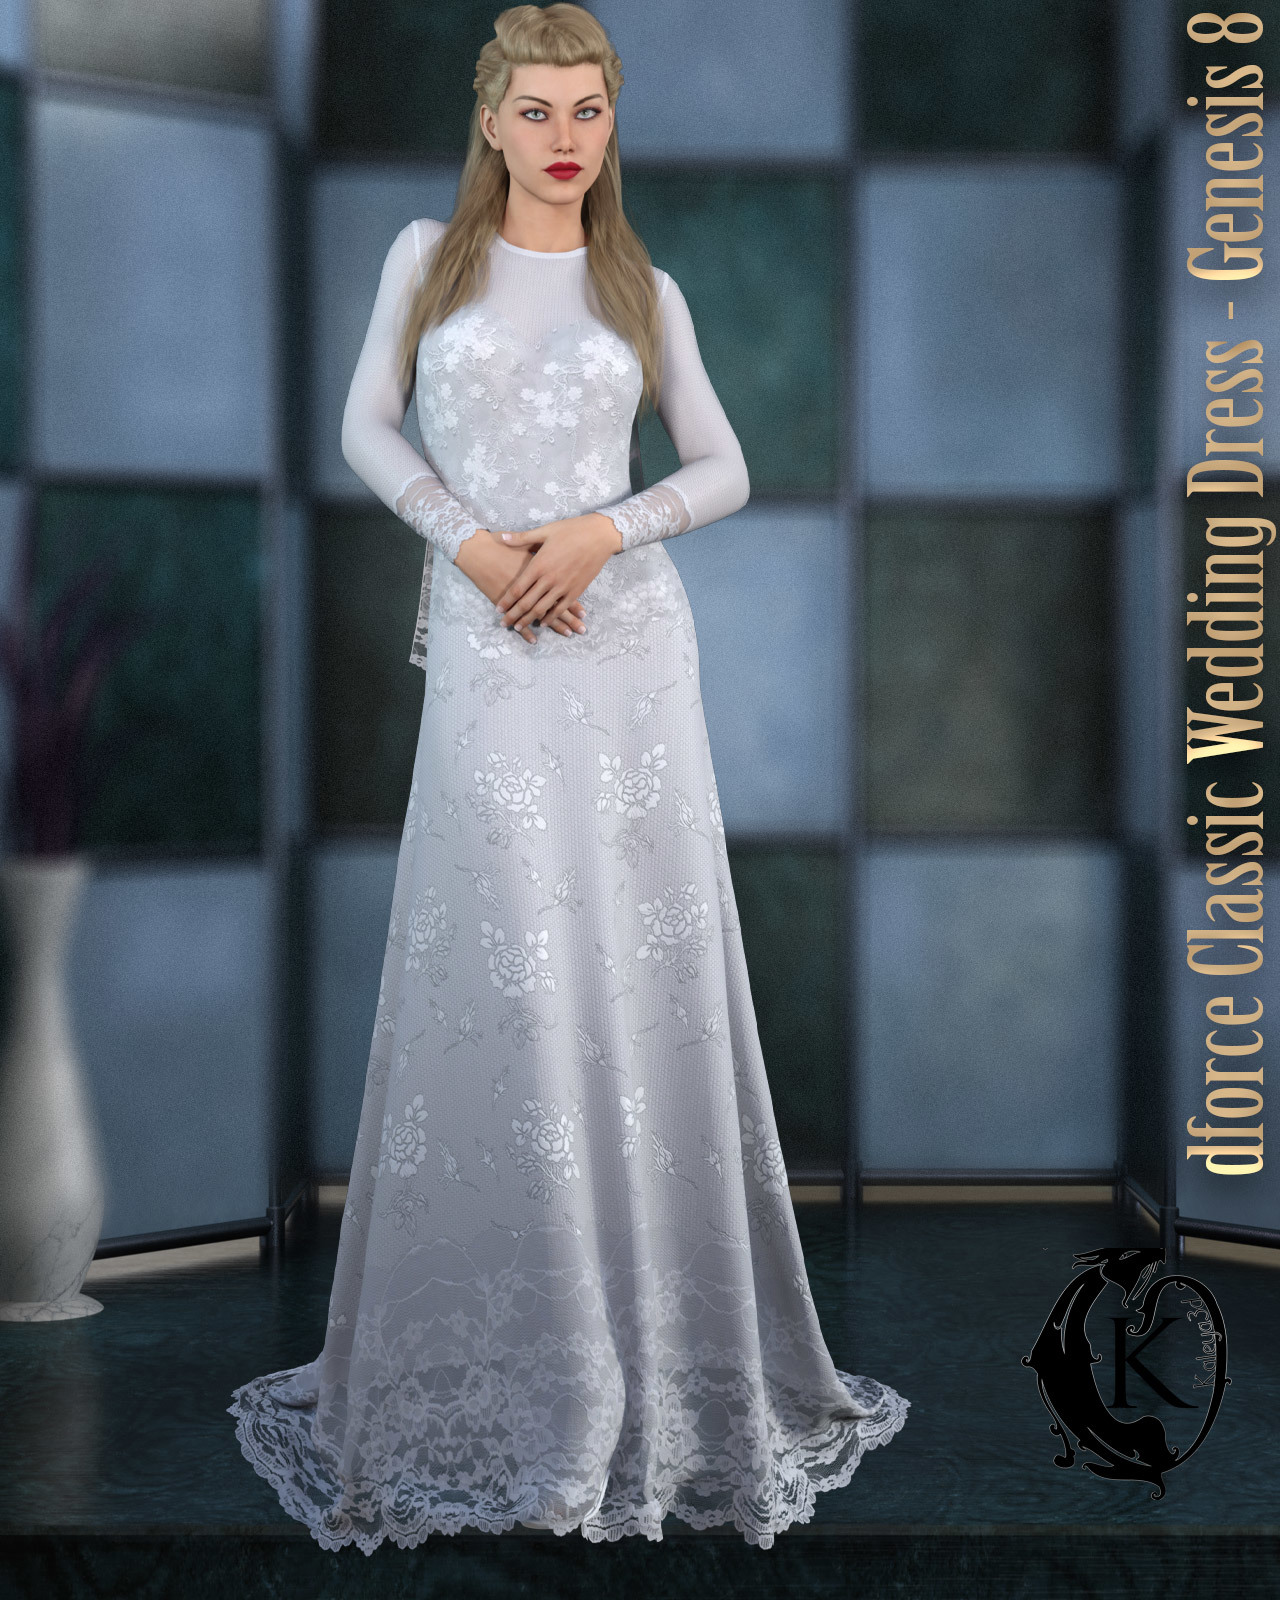 dforce - Classic Wedding Dress - Genesis 8 by kaleya